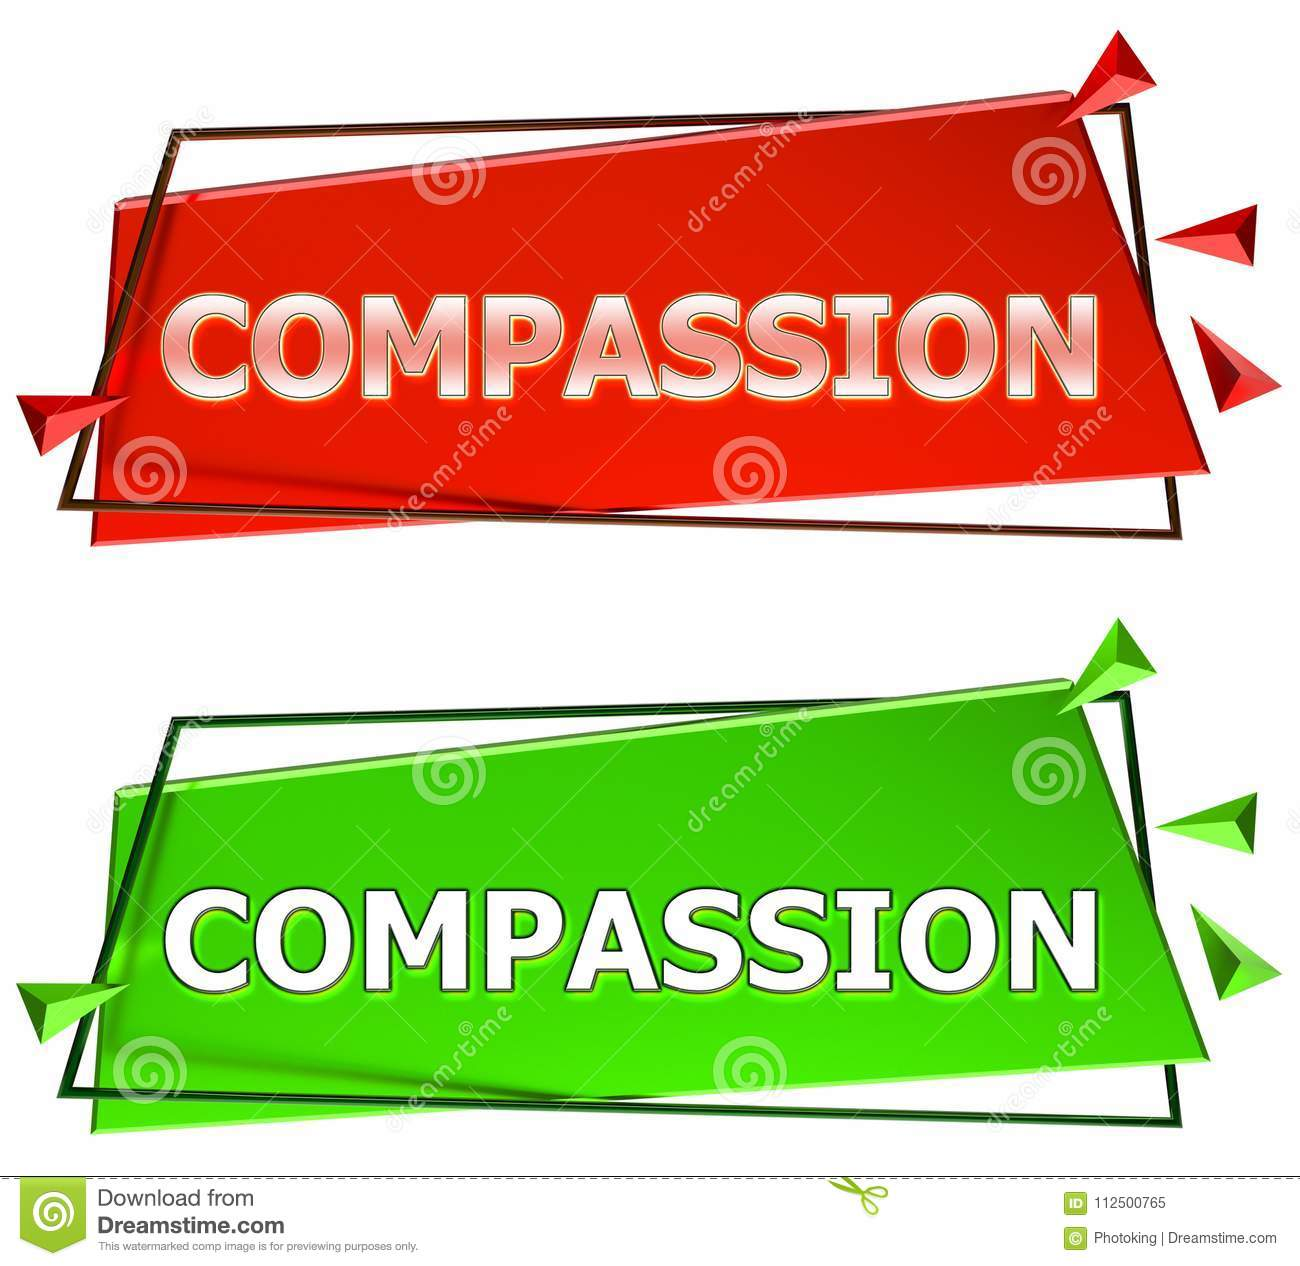 Compassion sign